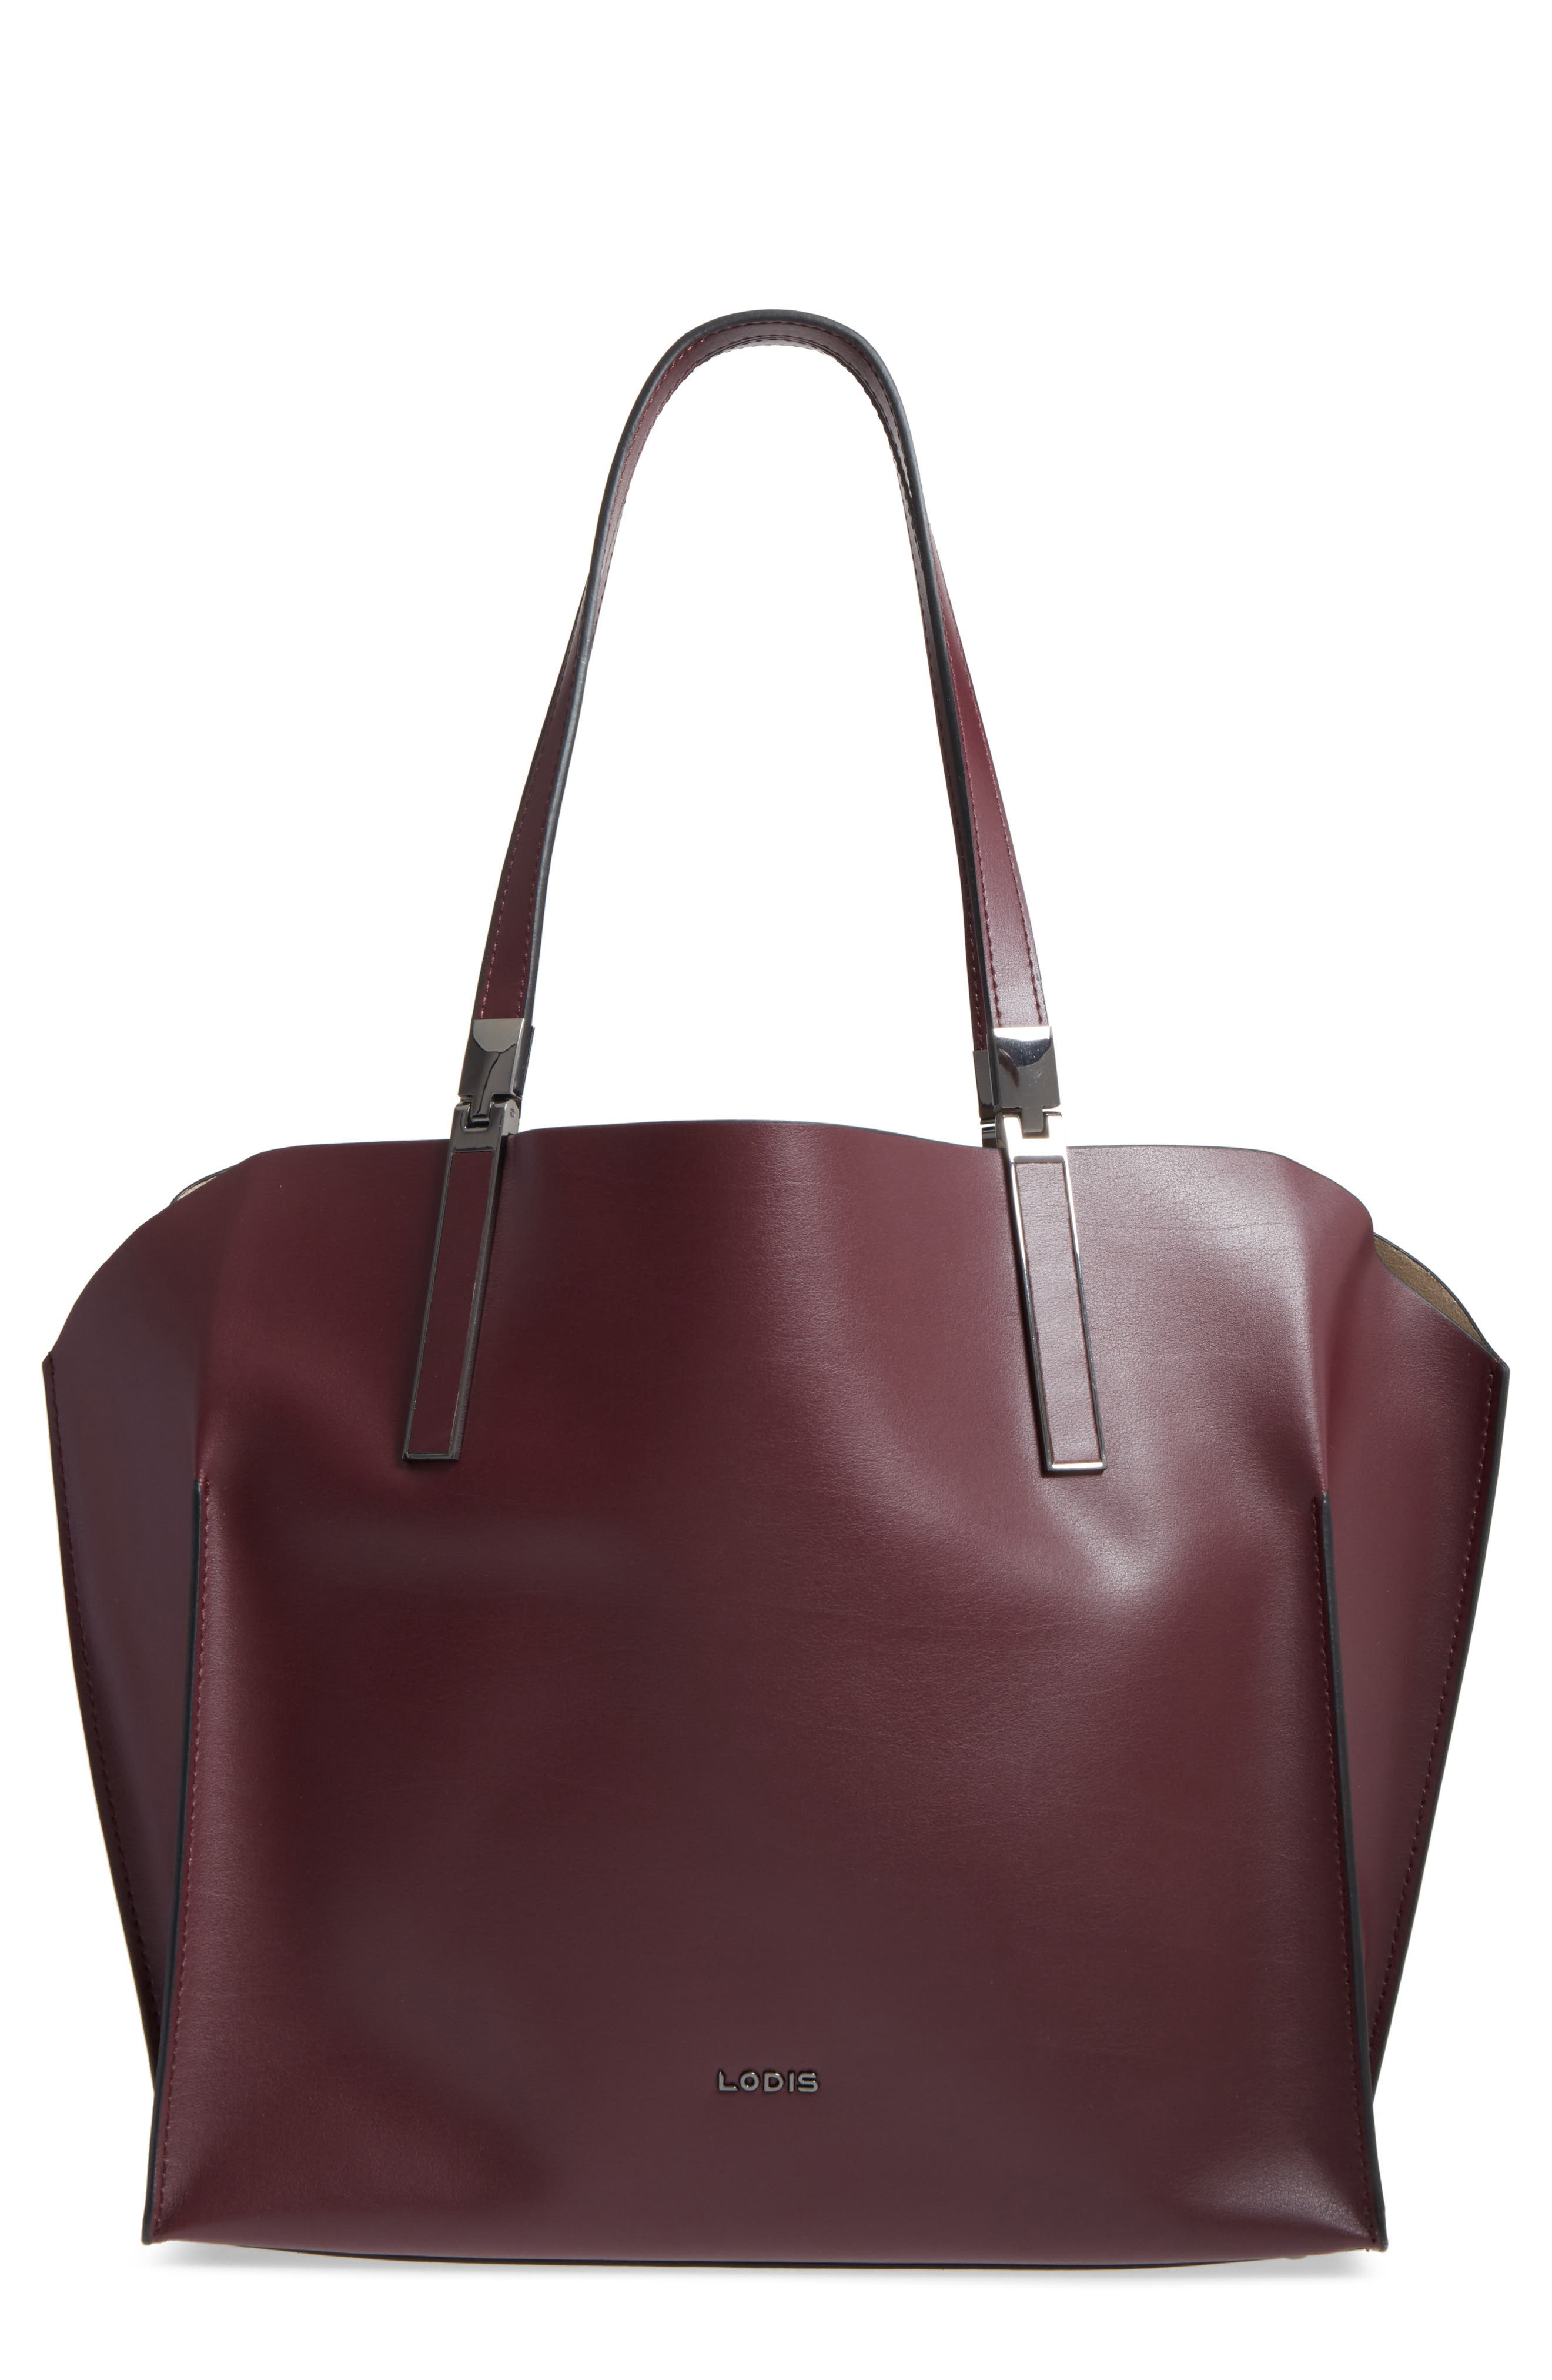 Main Image - LODIS Silicon Valley Collection Under Lock & Key - Anita RFID East/West Leather Satchel